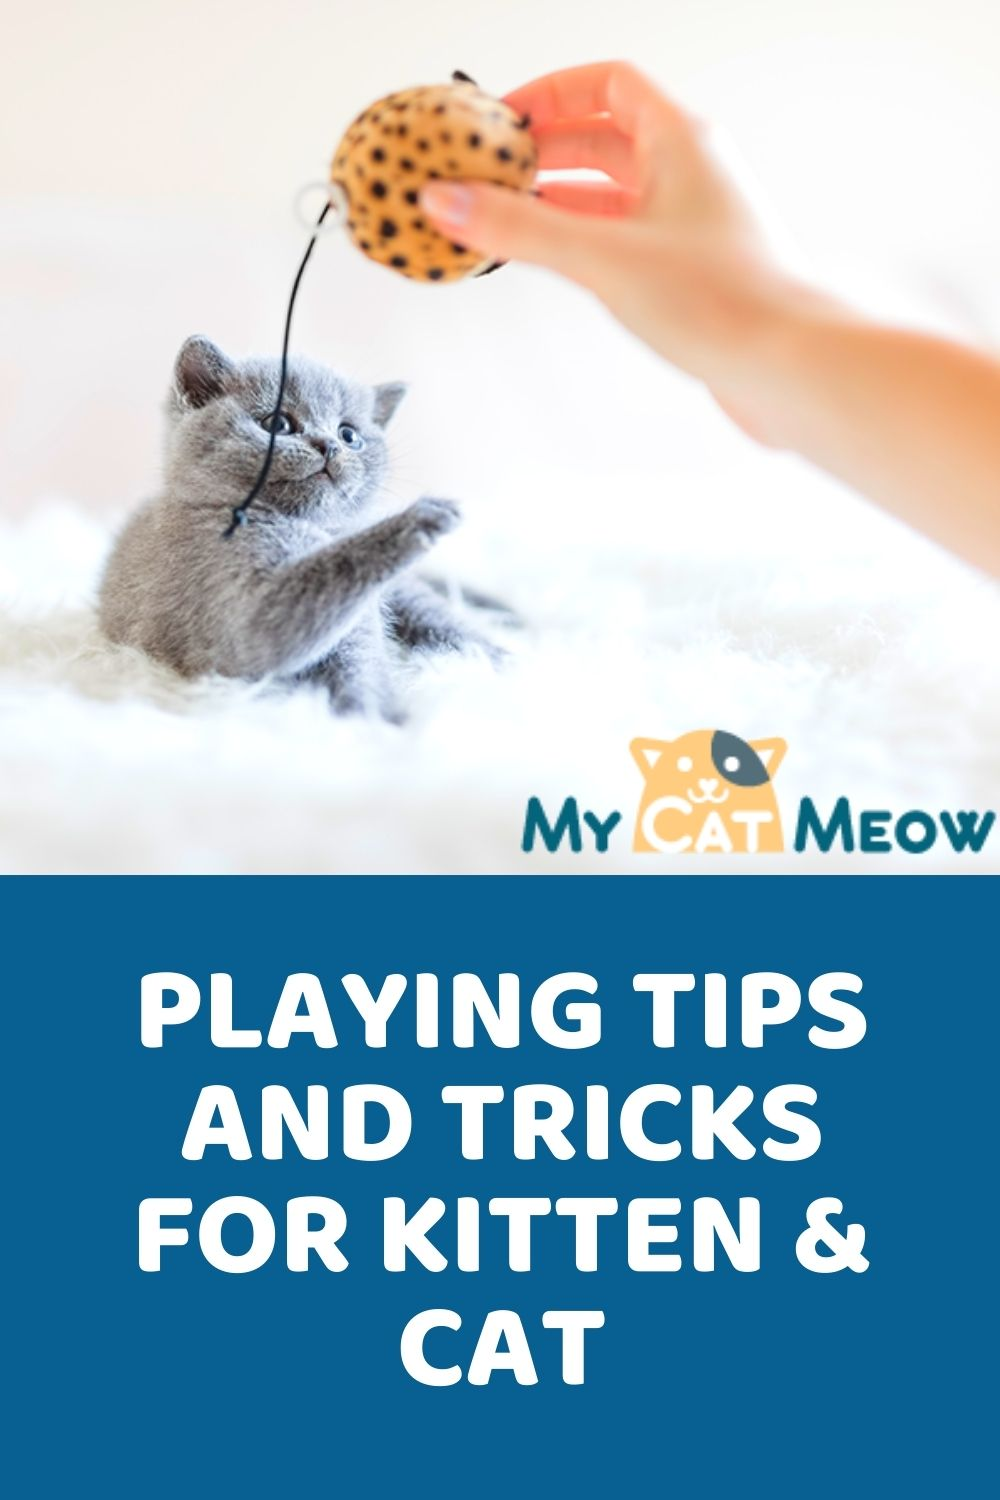 playing tips and tricks for kitten and cat